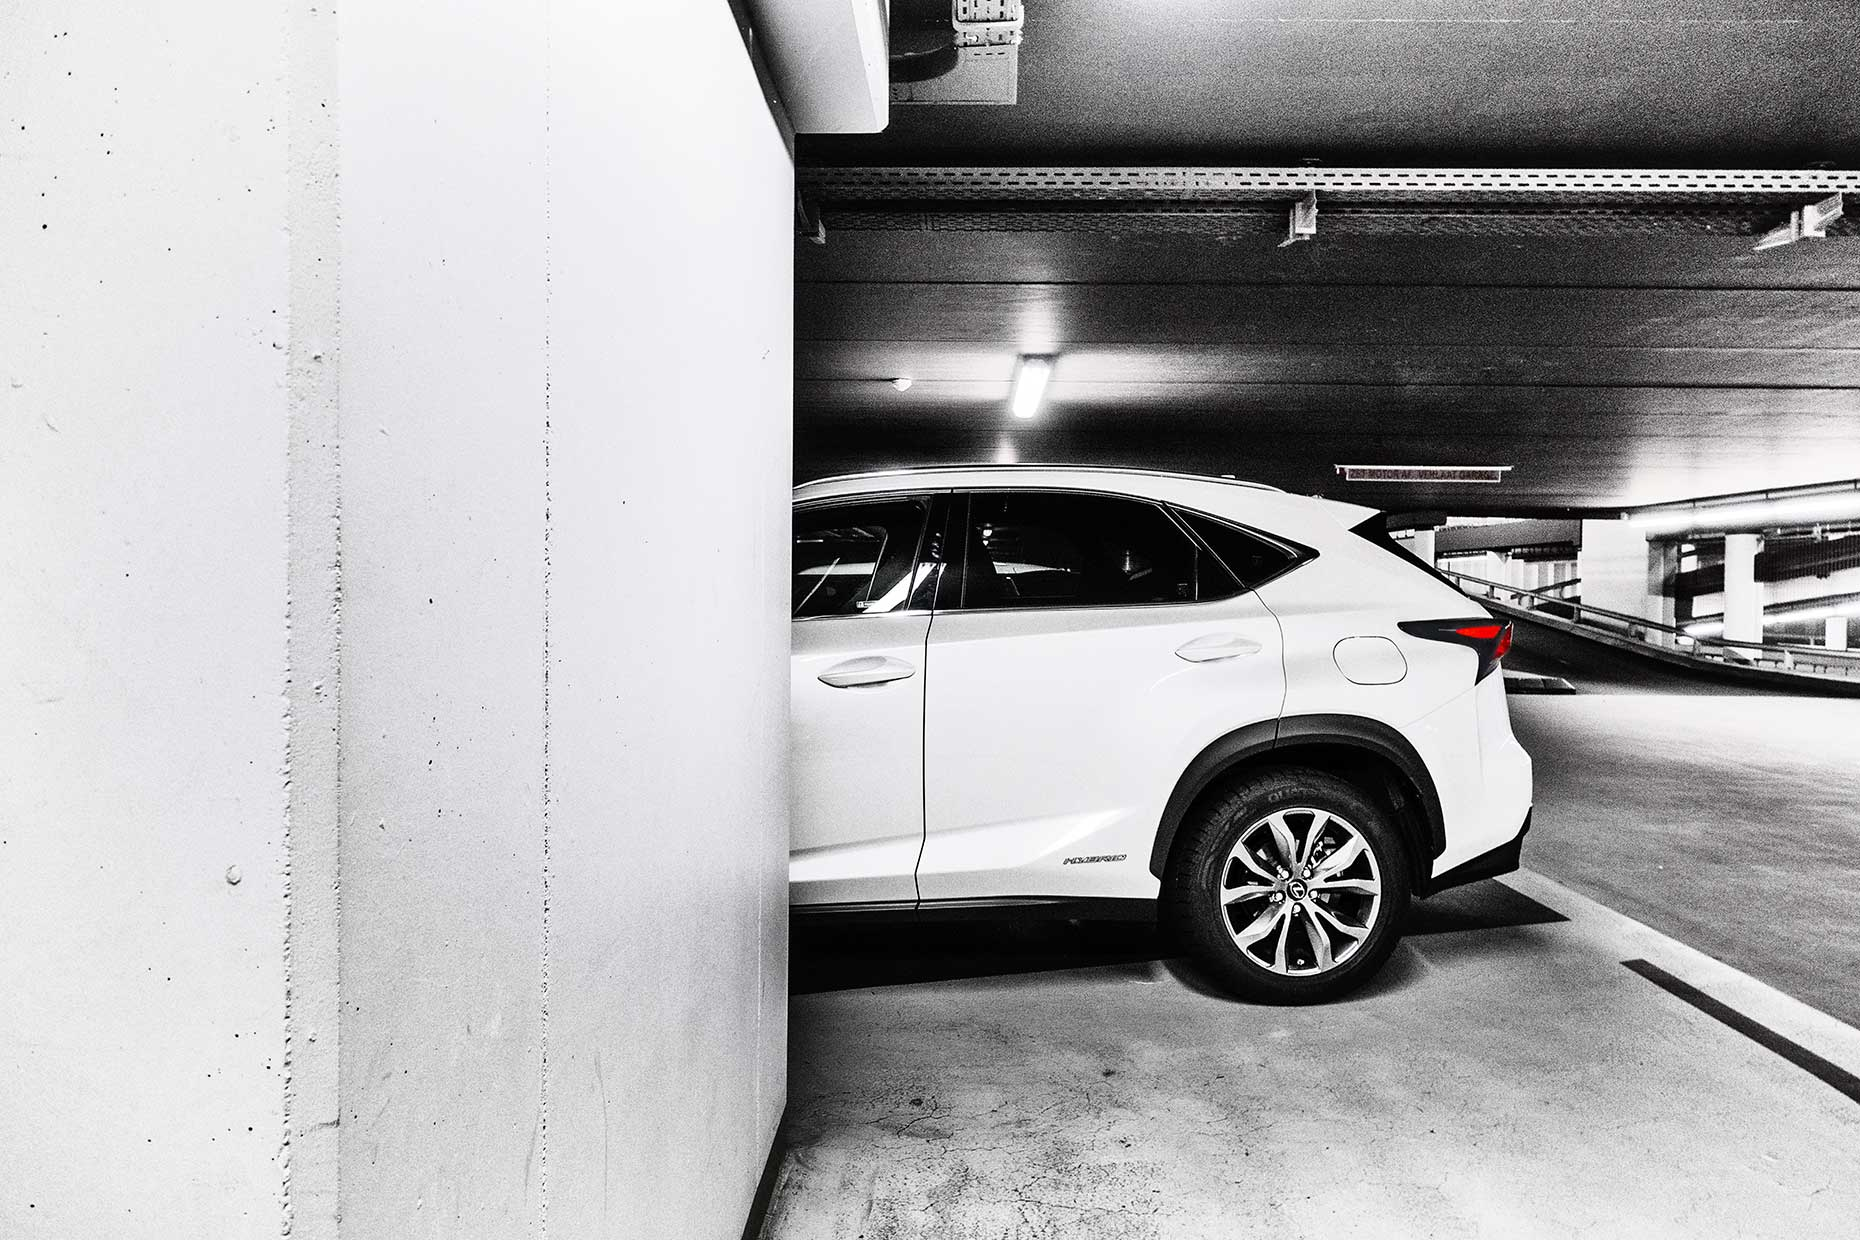 Lexus NX 300h  in parking garage